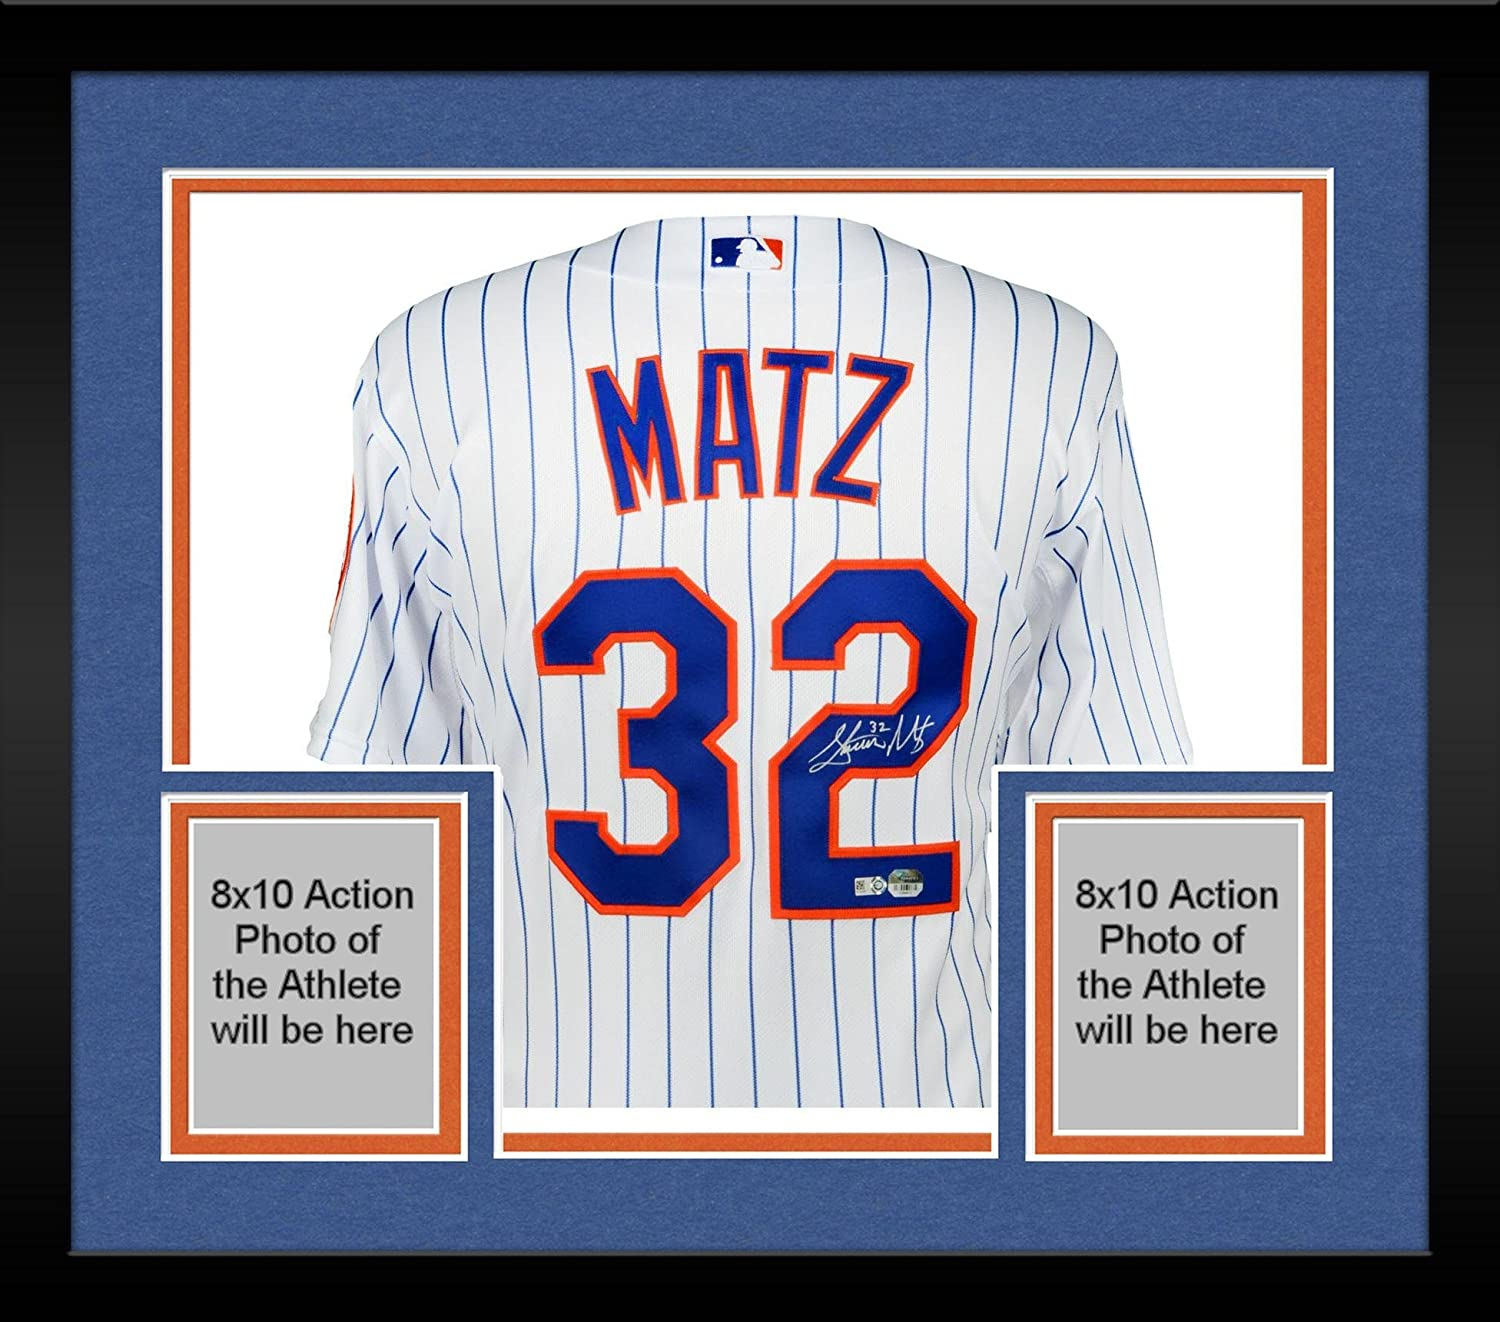 b8aa6bb40 Framed Steven Matz New York Mets Autographed White Authentic Jersey -  Fanatics Authentic Certified - Autographed